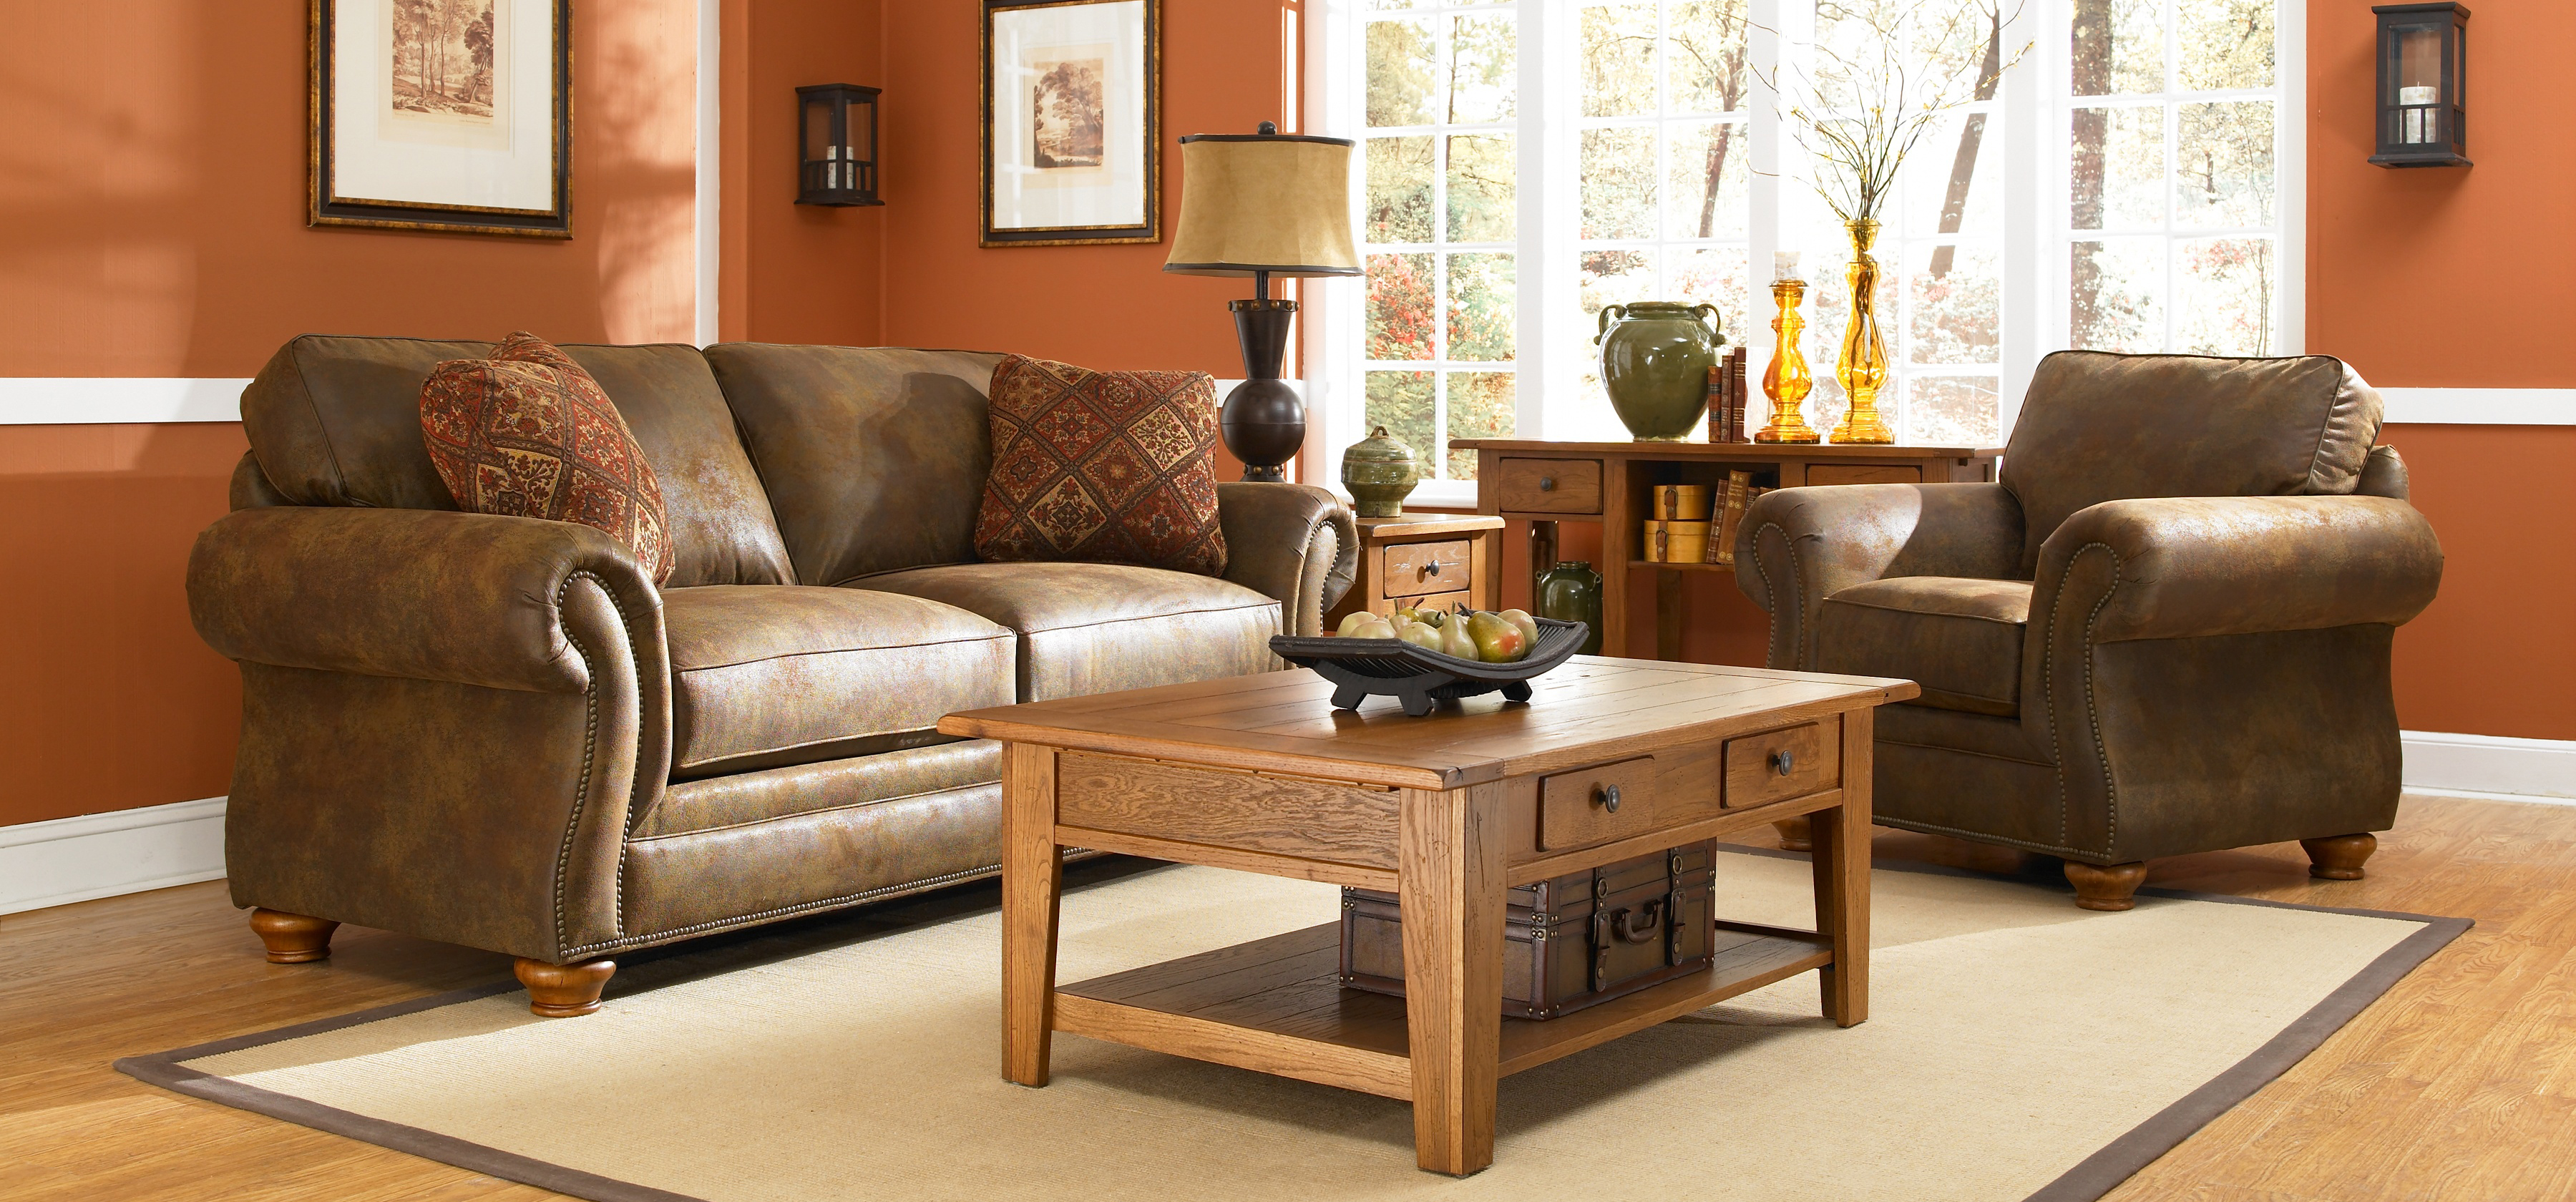 broyhill upholstery jordan furniture. Black Bedroom Furniture Sets. Home Design Ideas